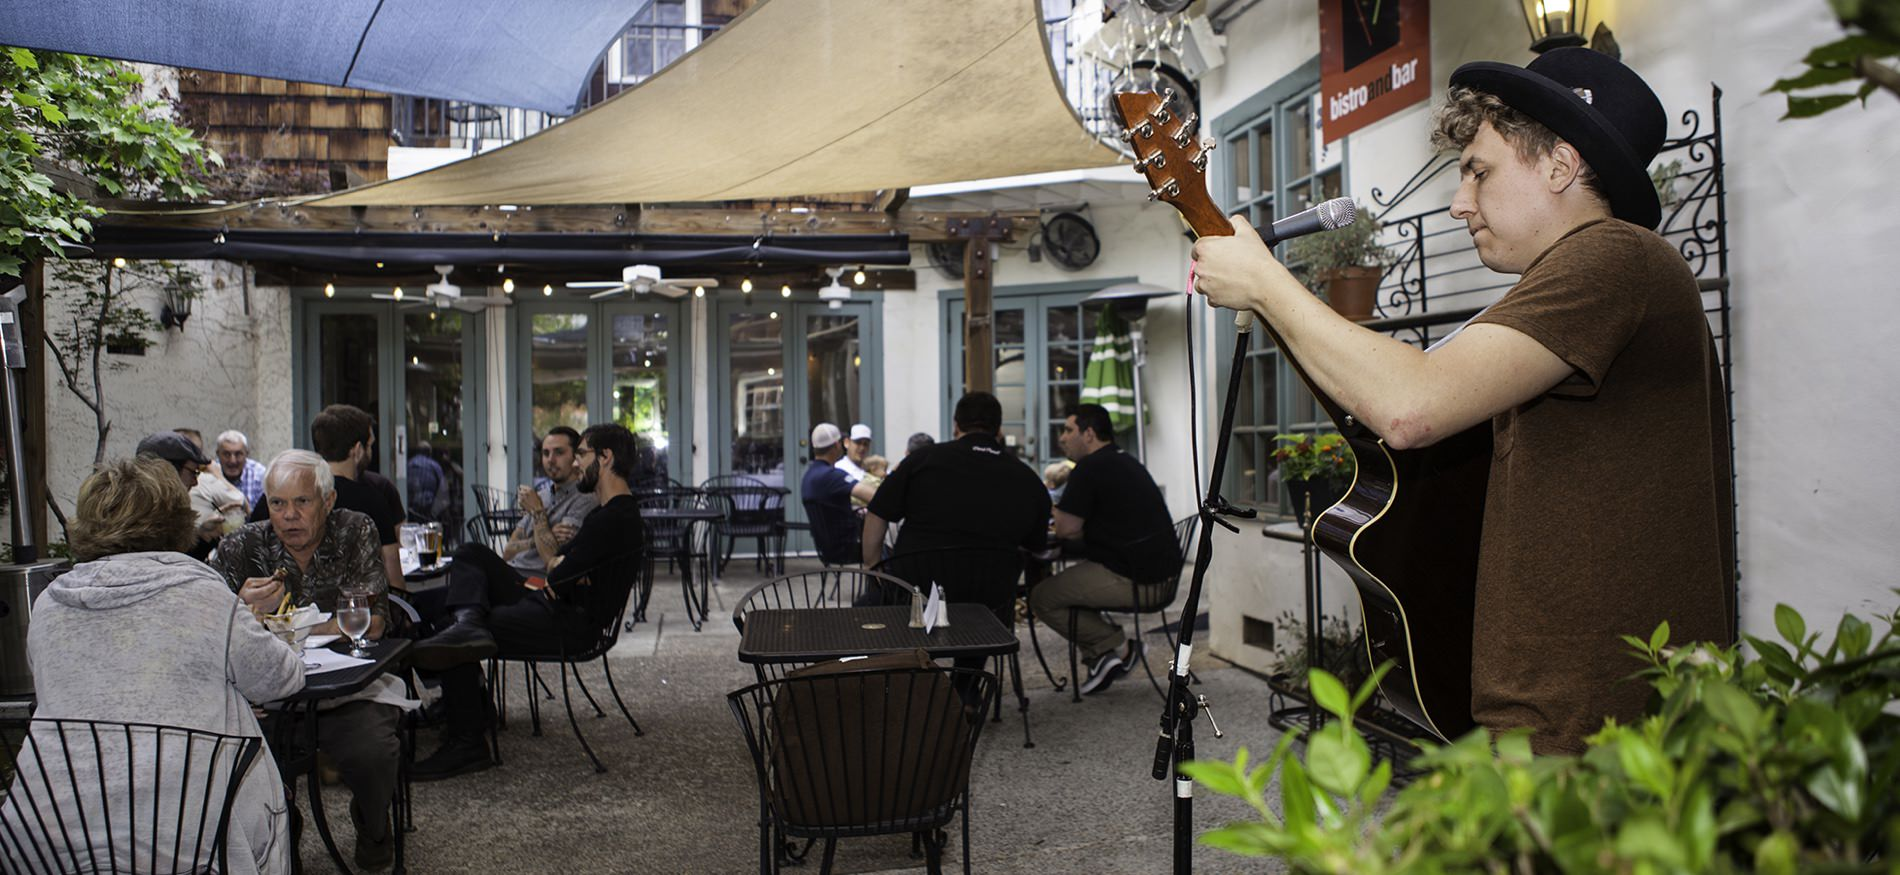 People sitting at black metal tables eating and talking outside a bistro and bar with live musician playing guitar